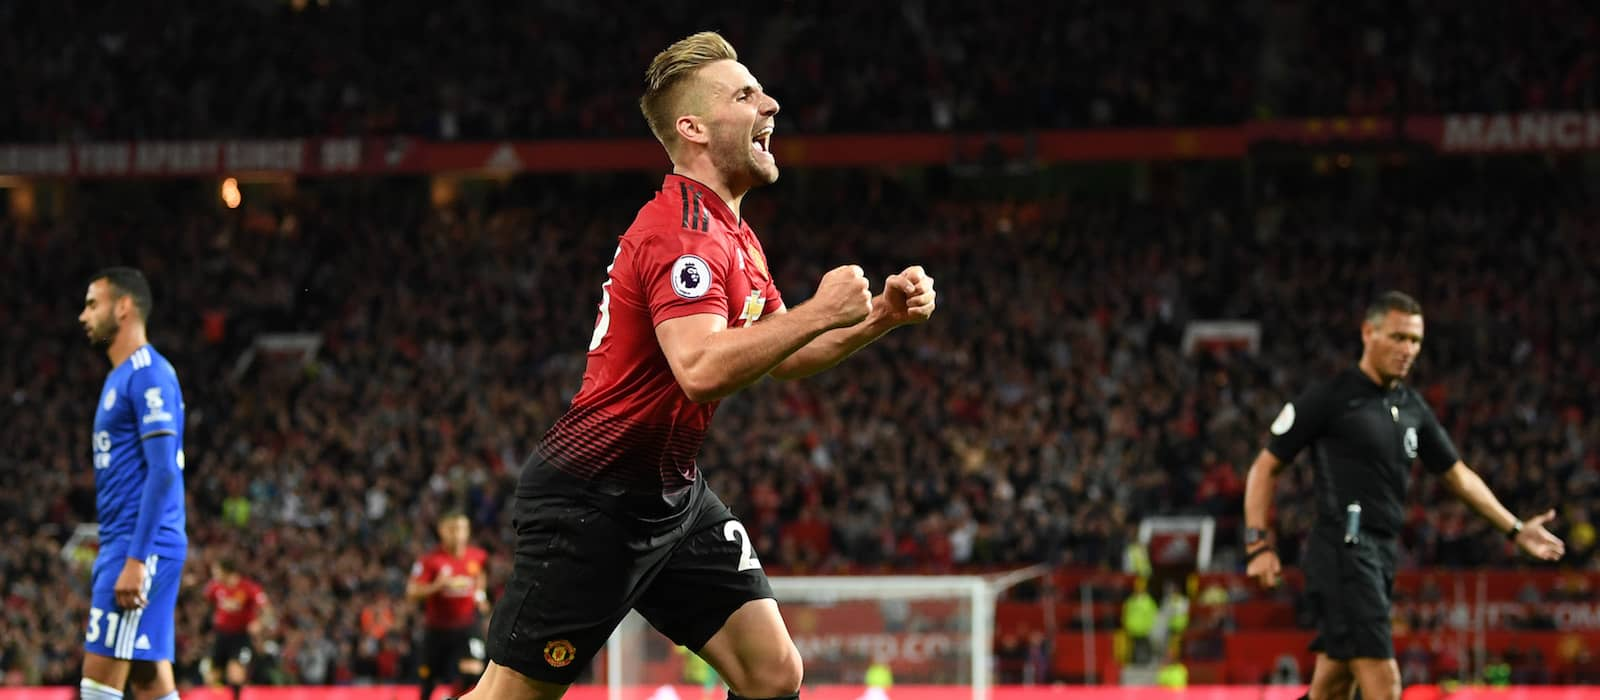 Luke Shaw: I wasn't playing as well as I could last season